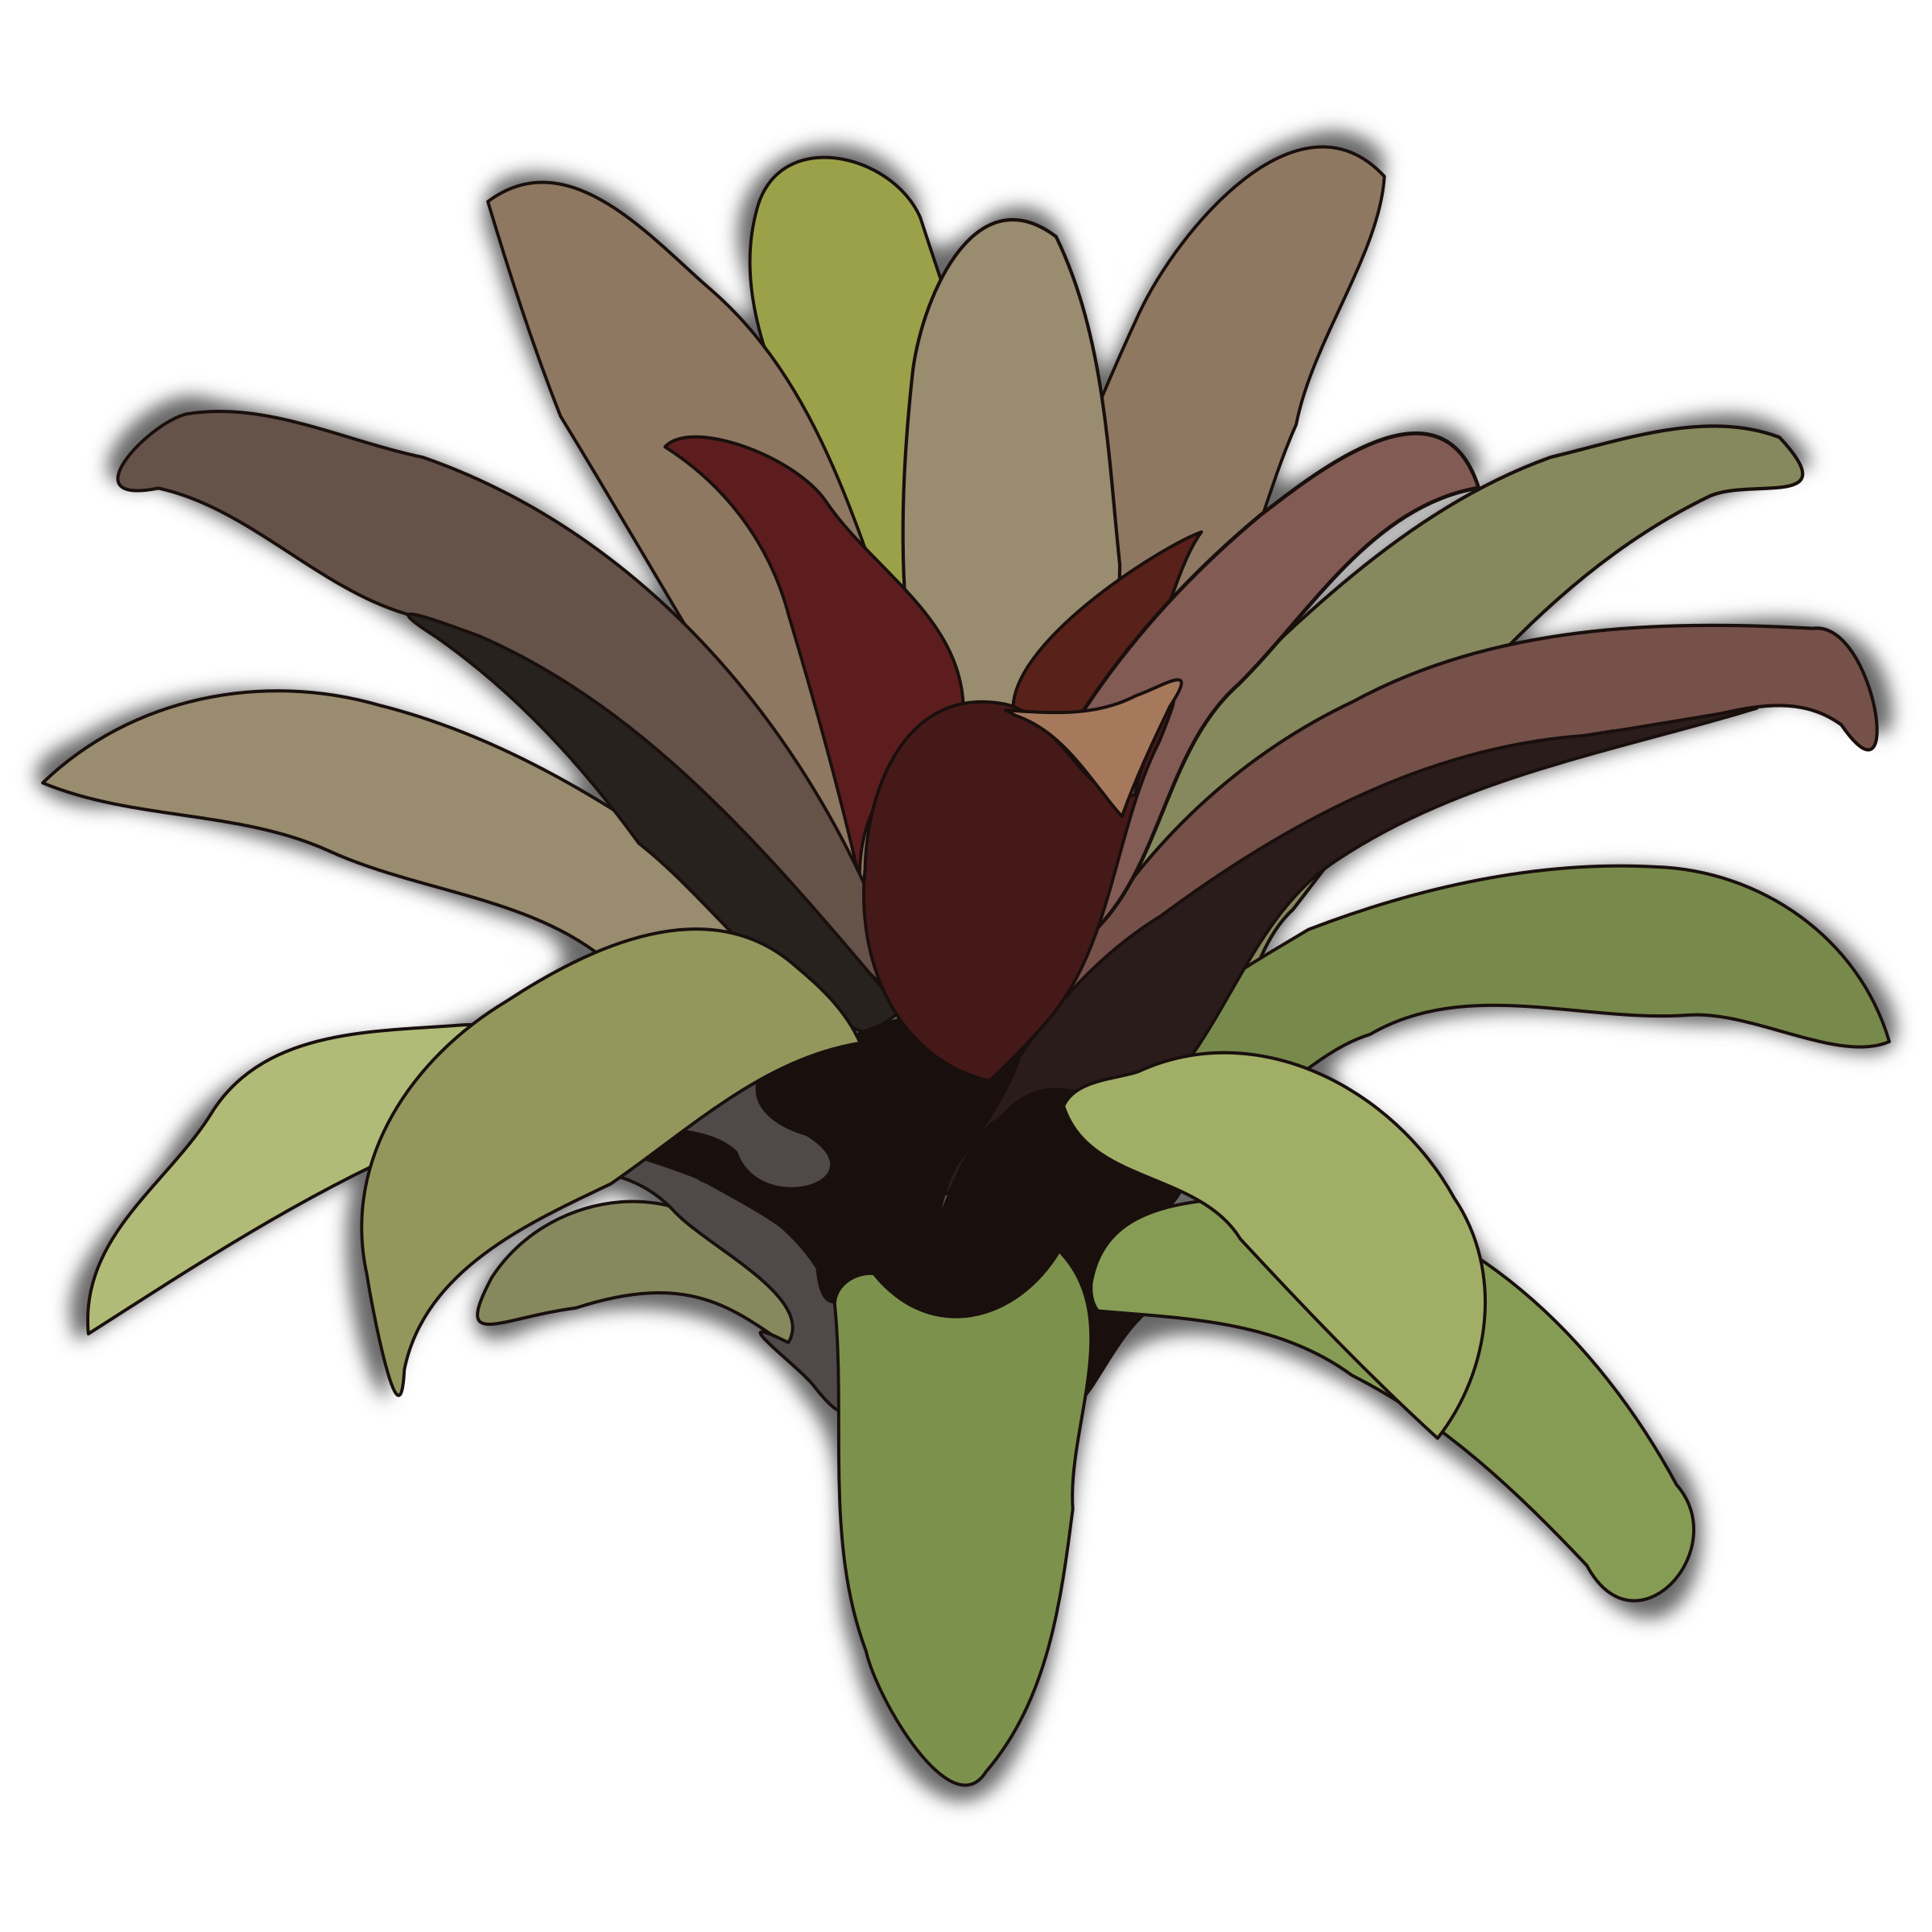 Bromelia clipart #6, Download drawings